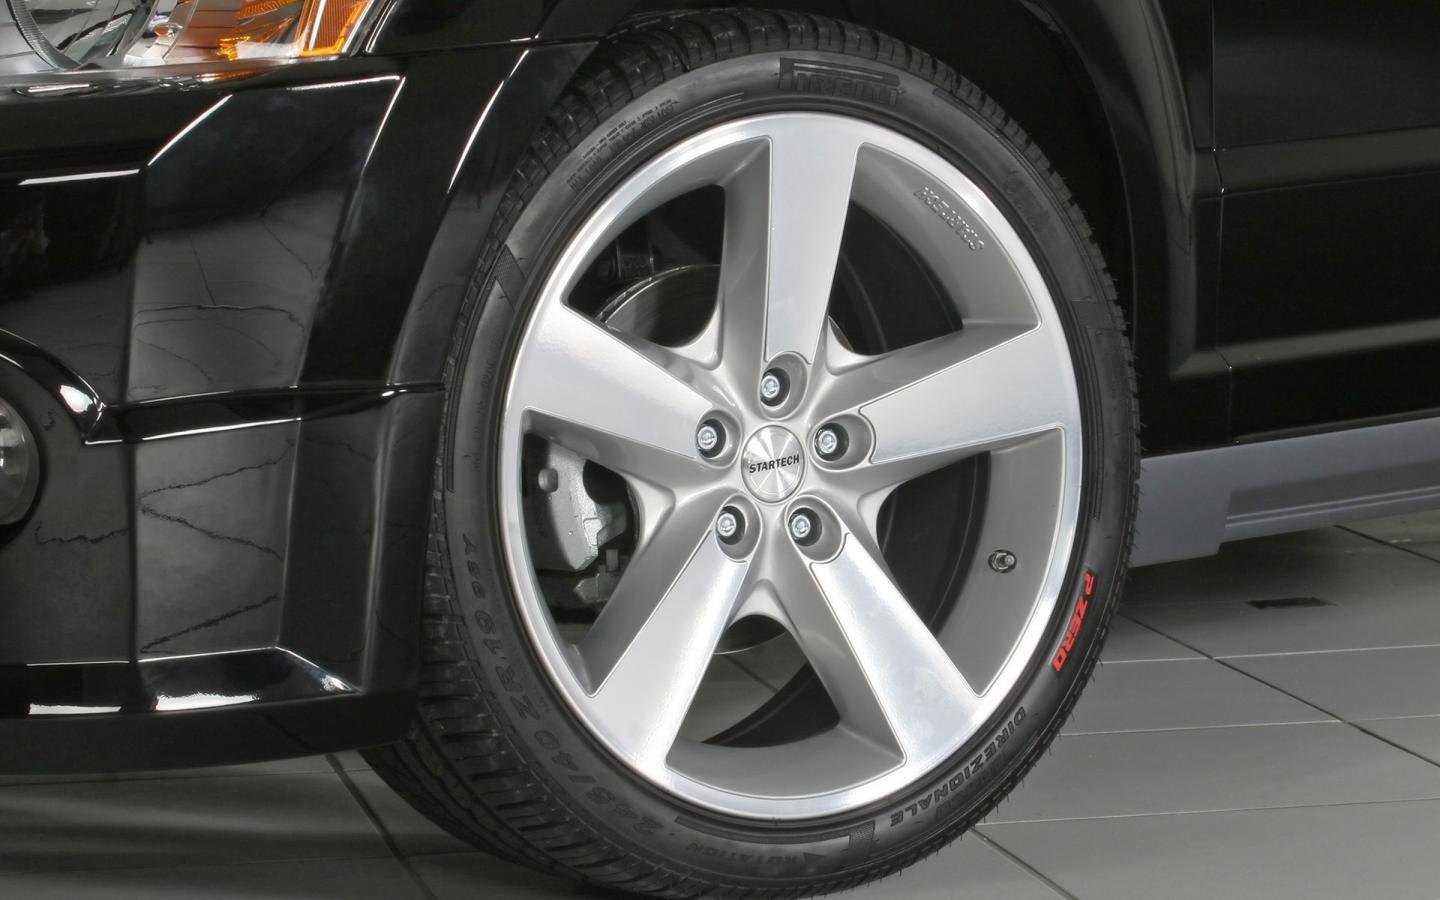 2007 Startech Dodge Caliber Wheel 1440x900